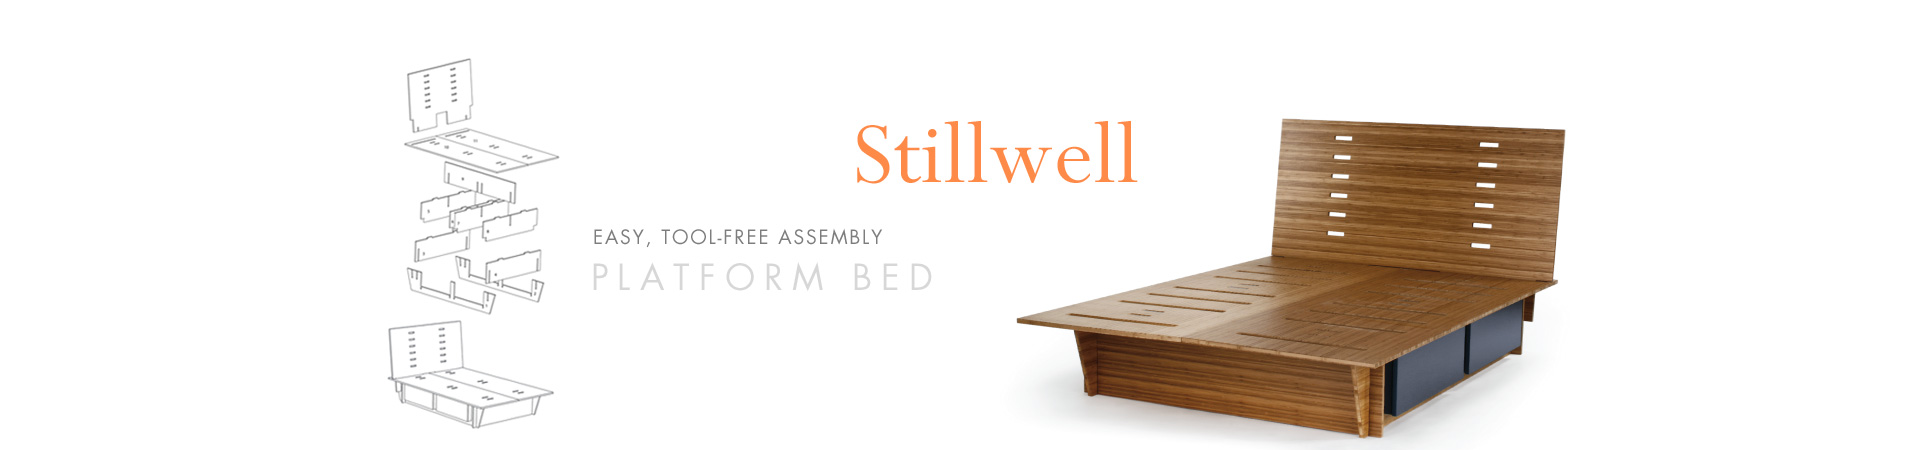 Stillwell-Slider1